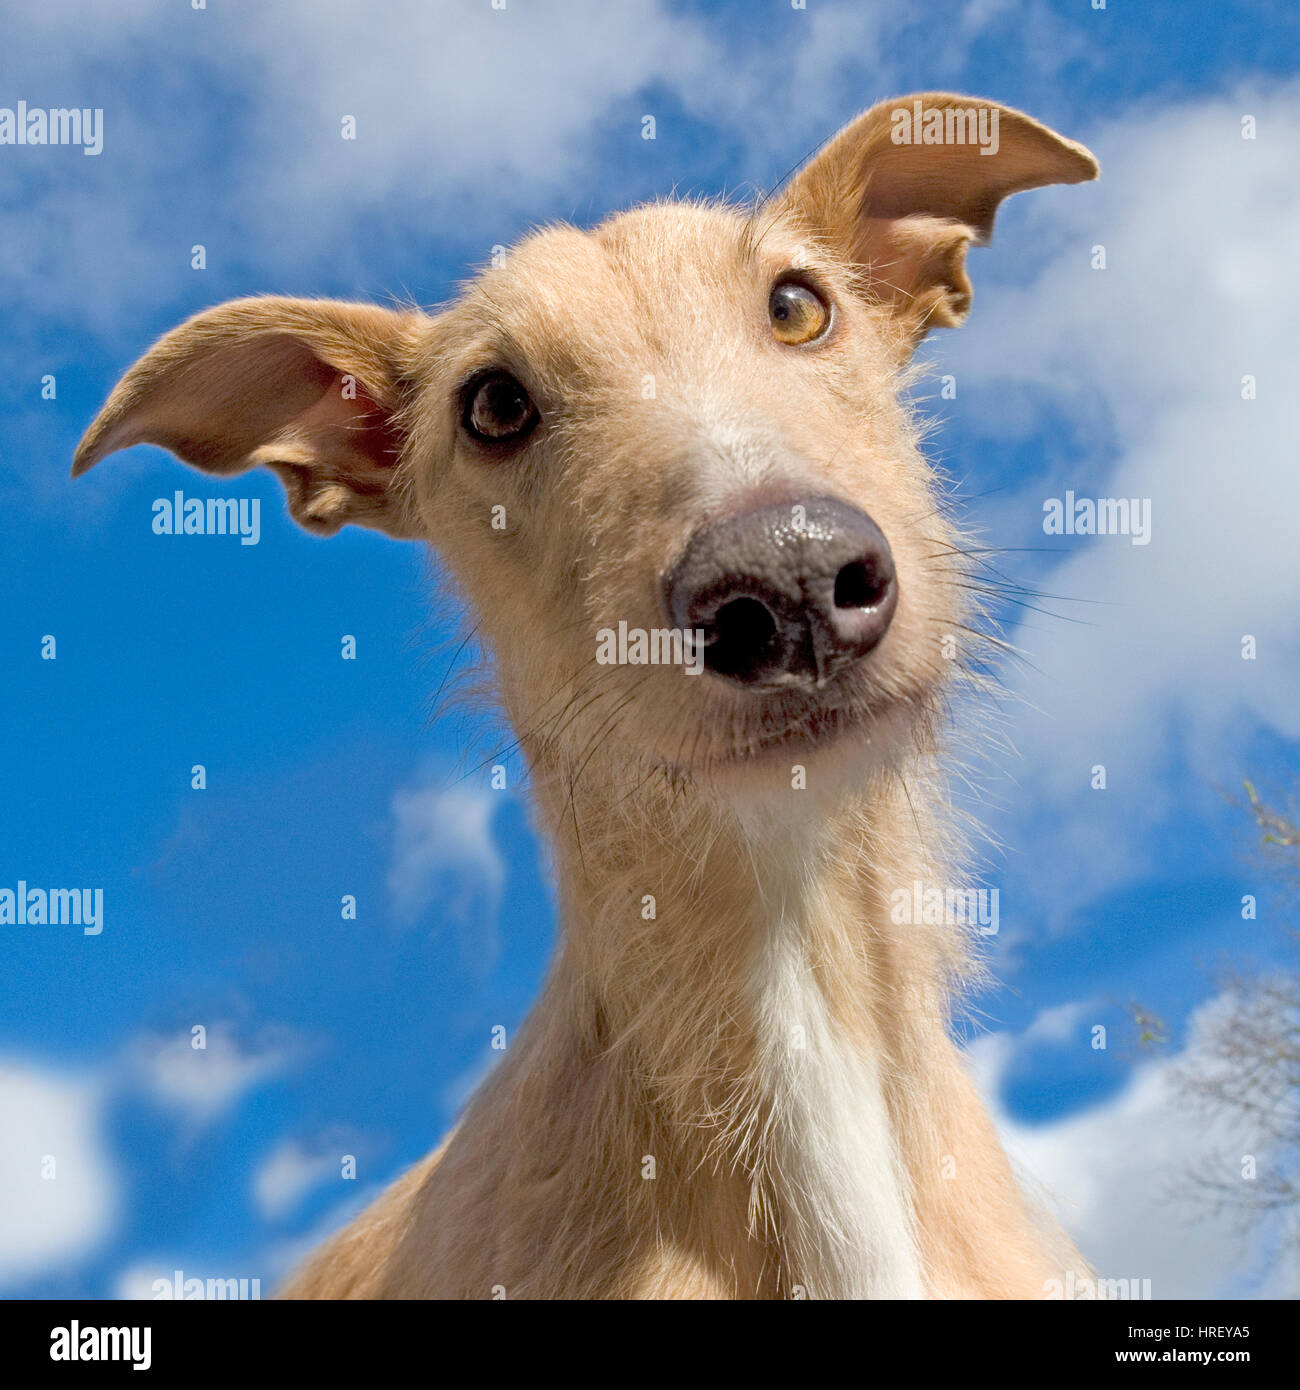 Lurcher - Stock Image